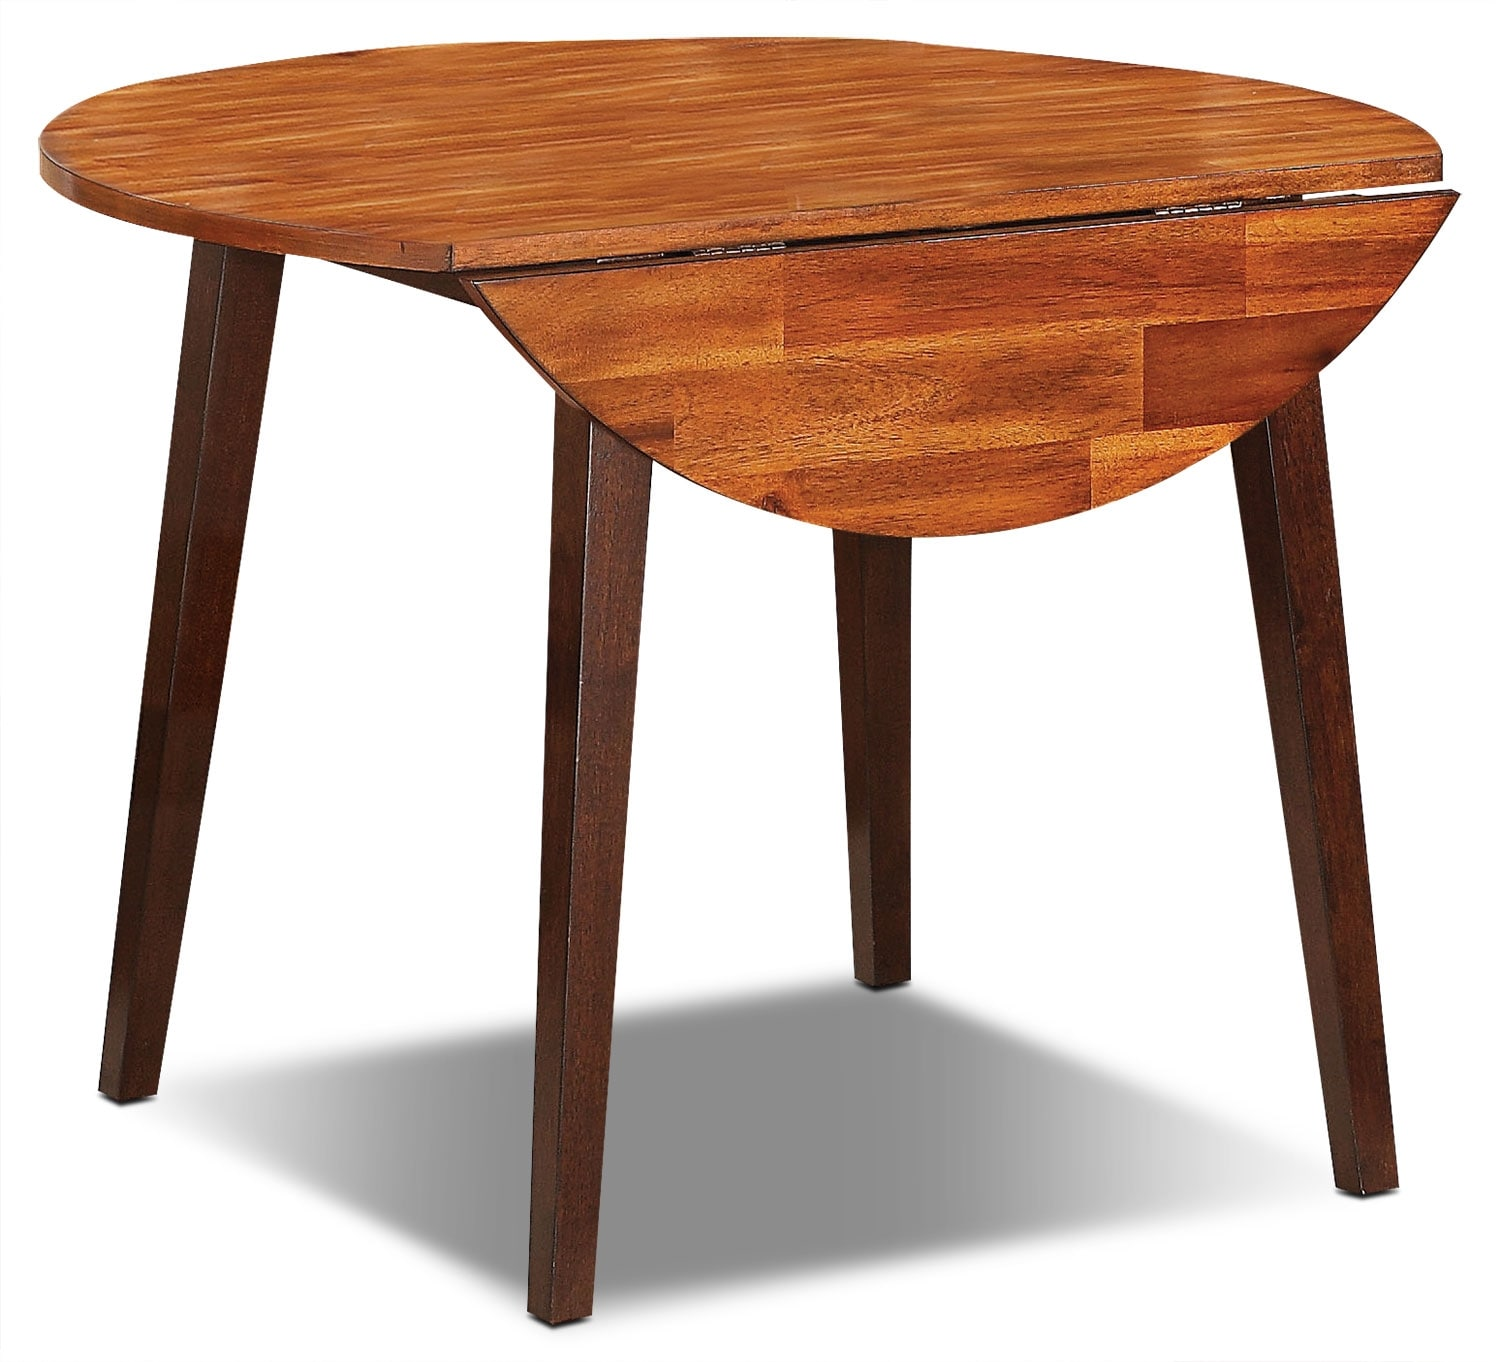 Dining Room Furniture - Zara Round Drop-Leaf Dining Table